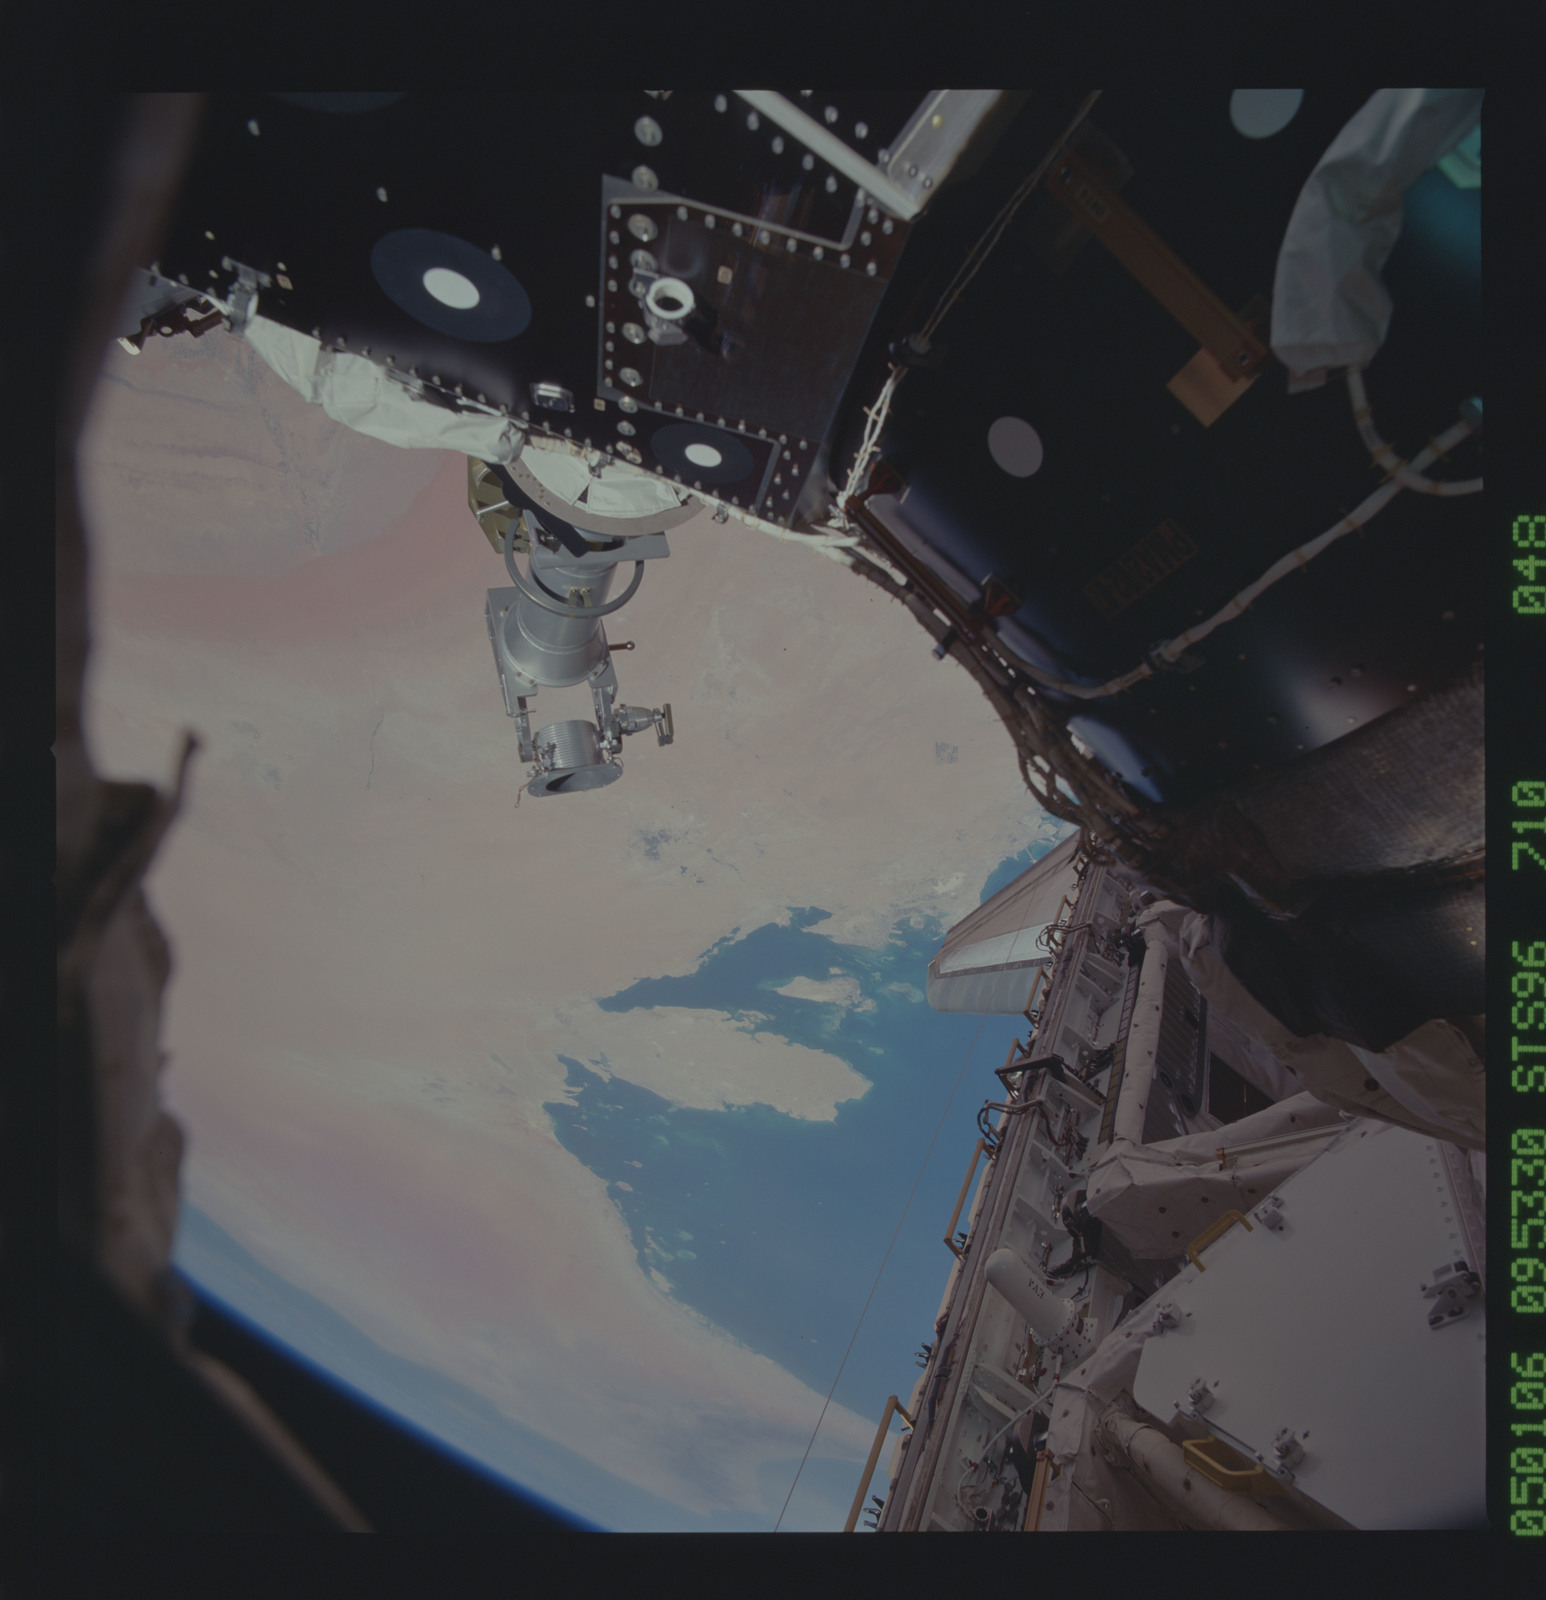 STS096-710-048 - STS-096 - View of the STS-96 EVA